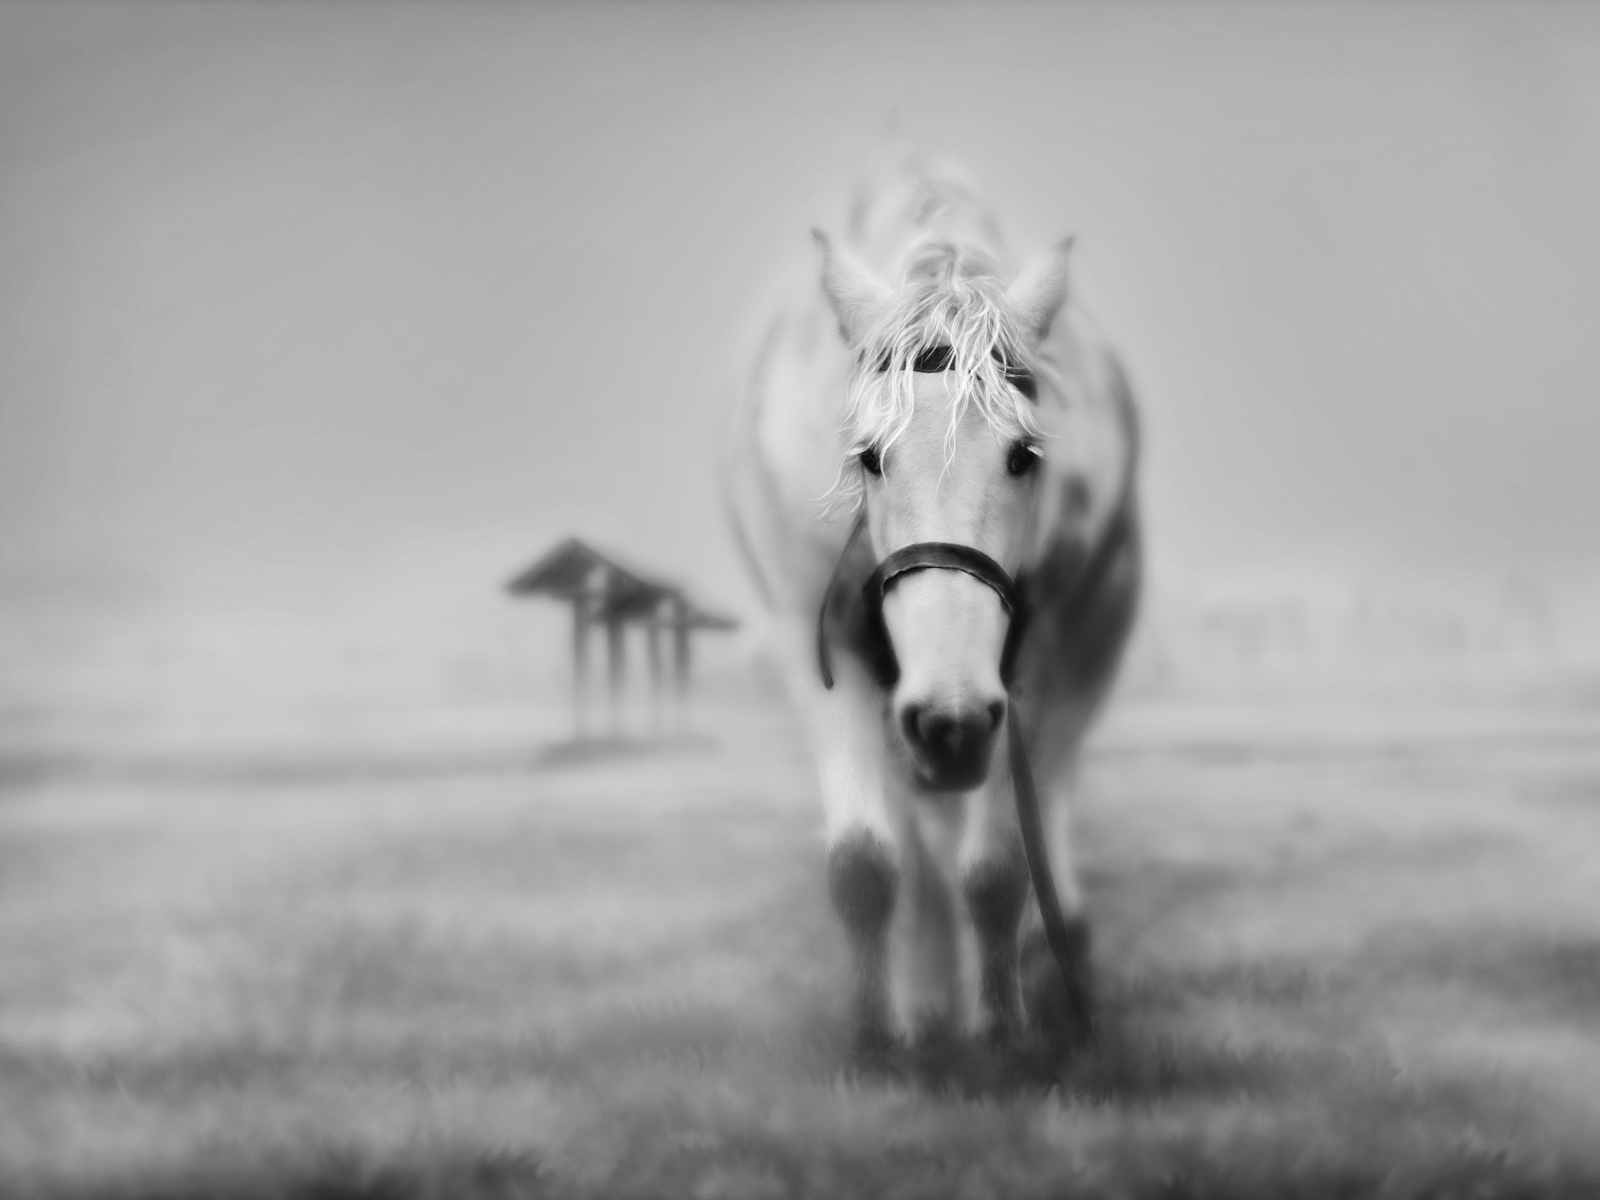 1600x1200 Black and white horse wallpaper, music and dance ...